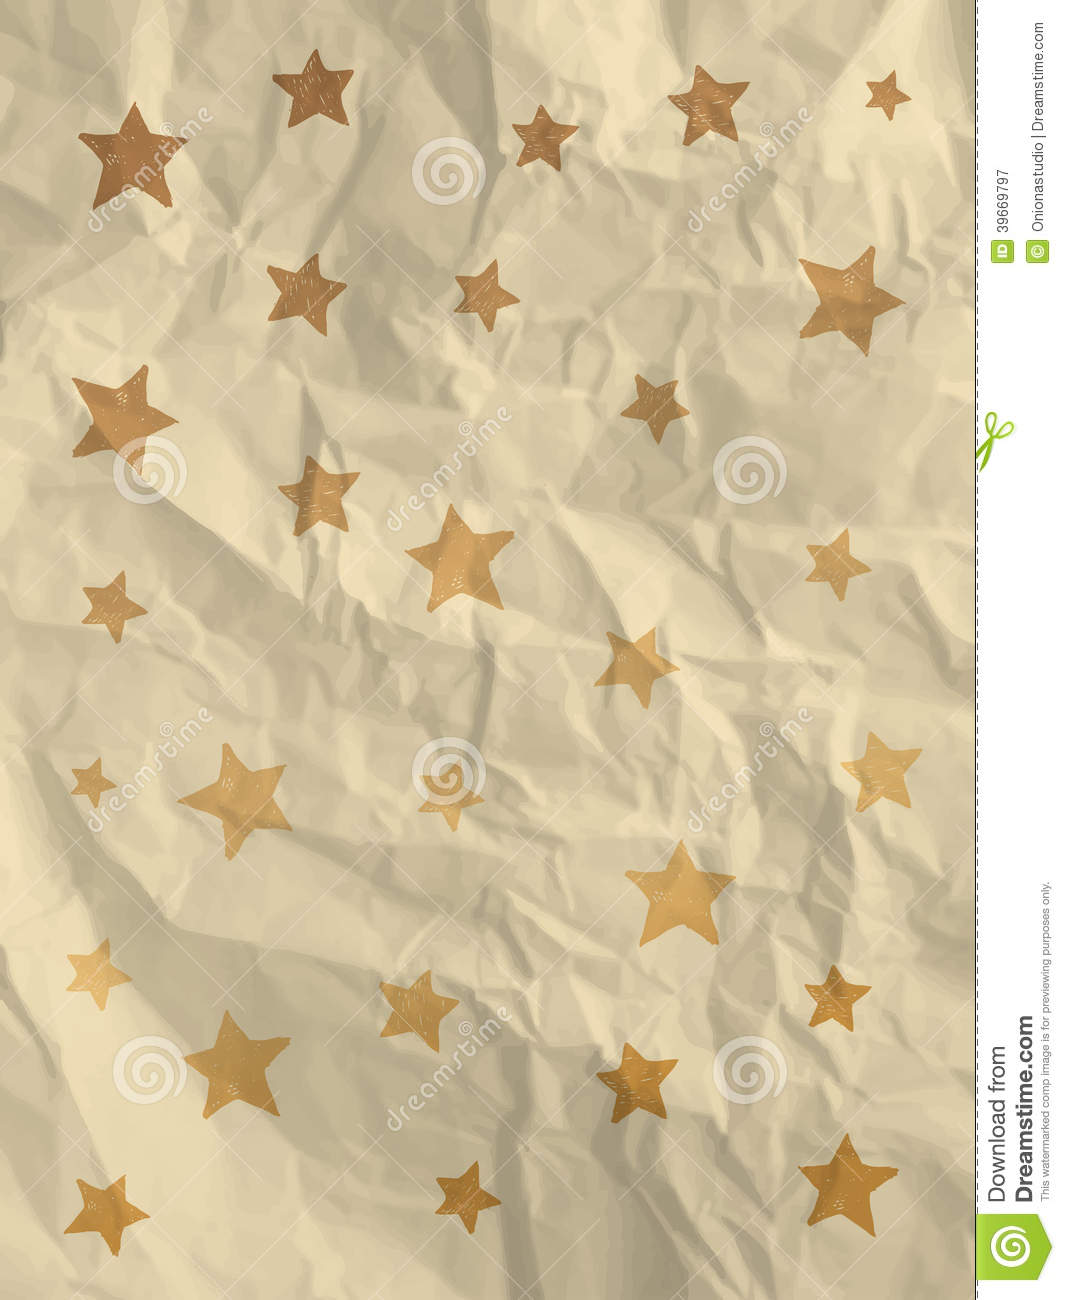 Vintage white wrapping paper with stars